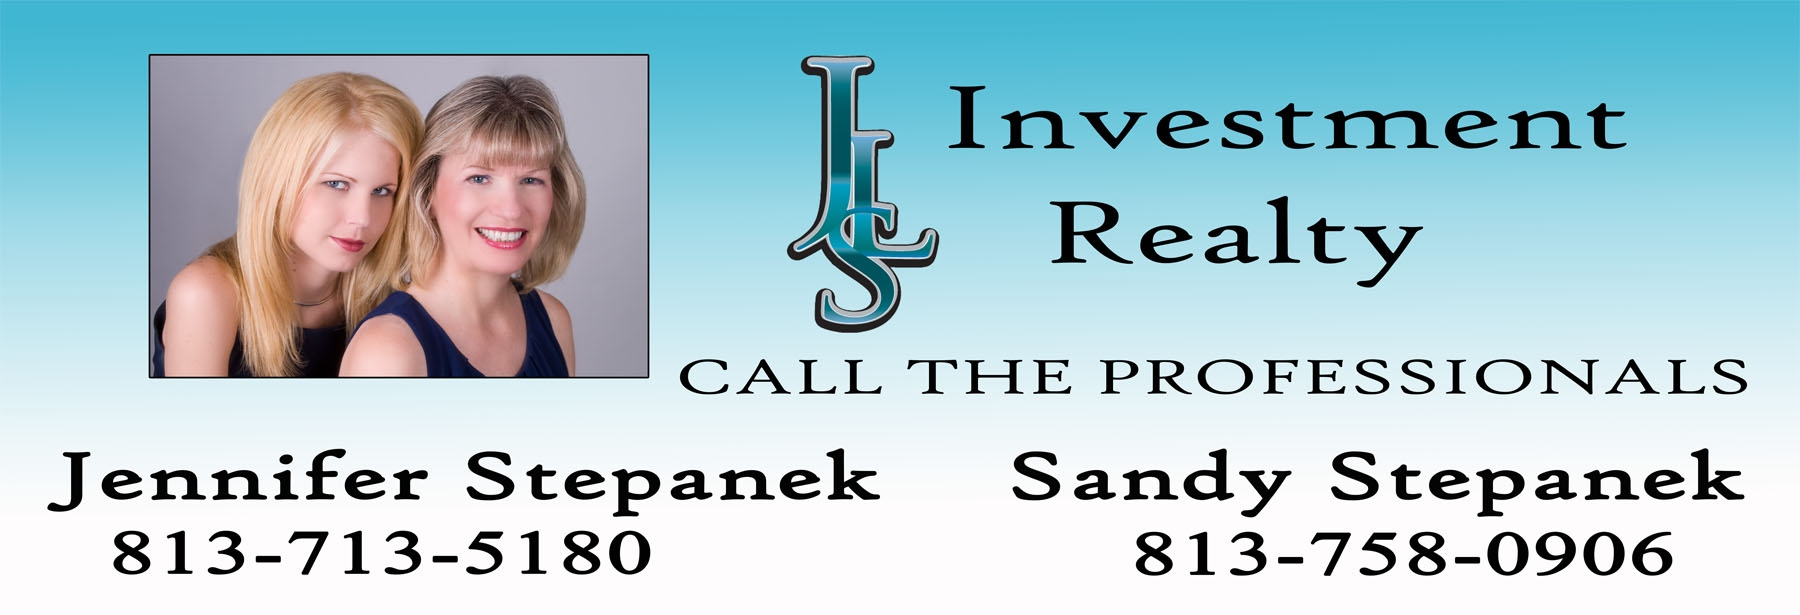 JLS Investment Realty Sandy & Jennifer Stepanek